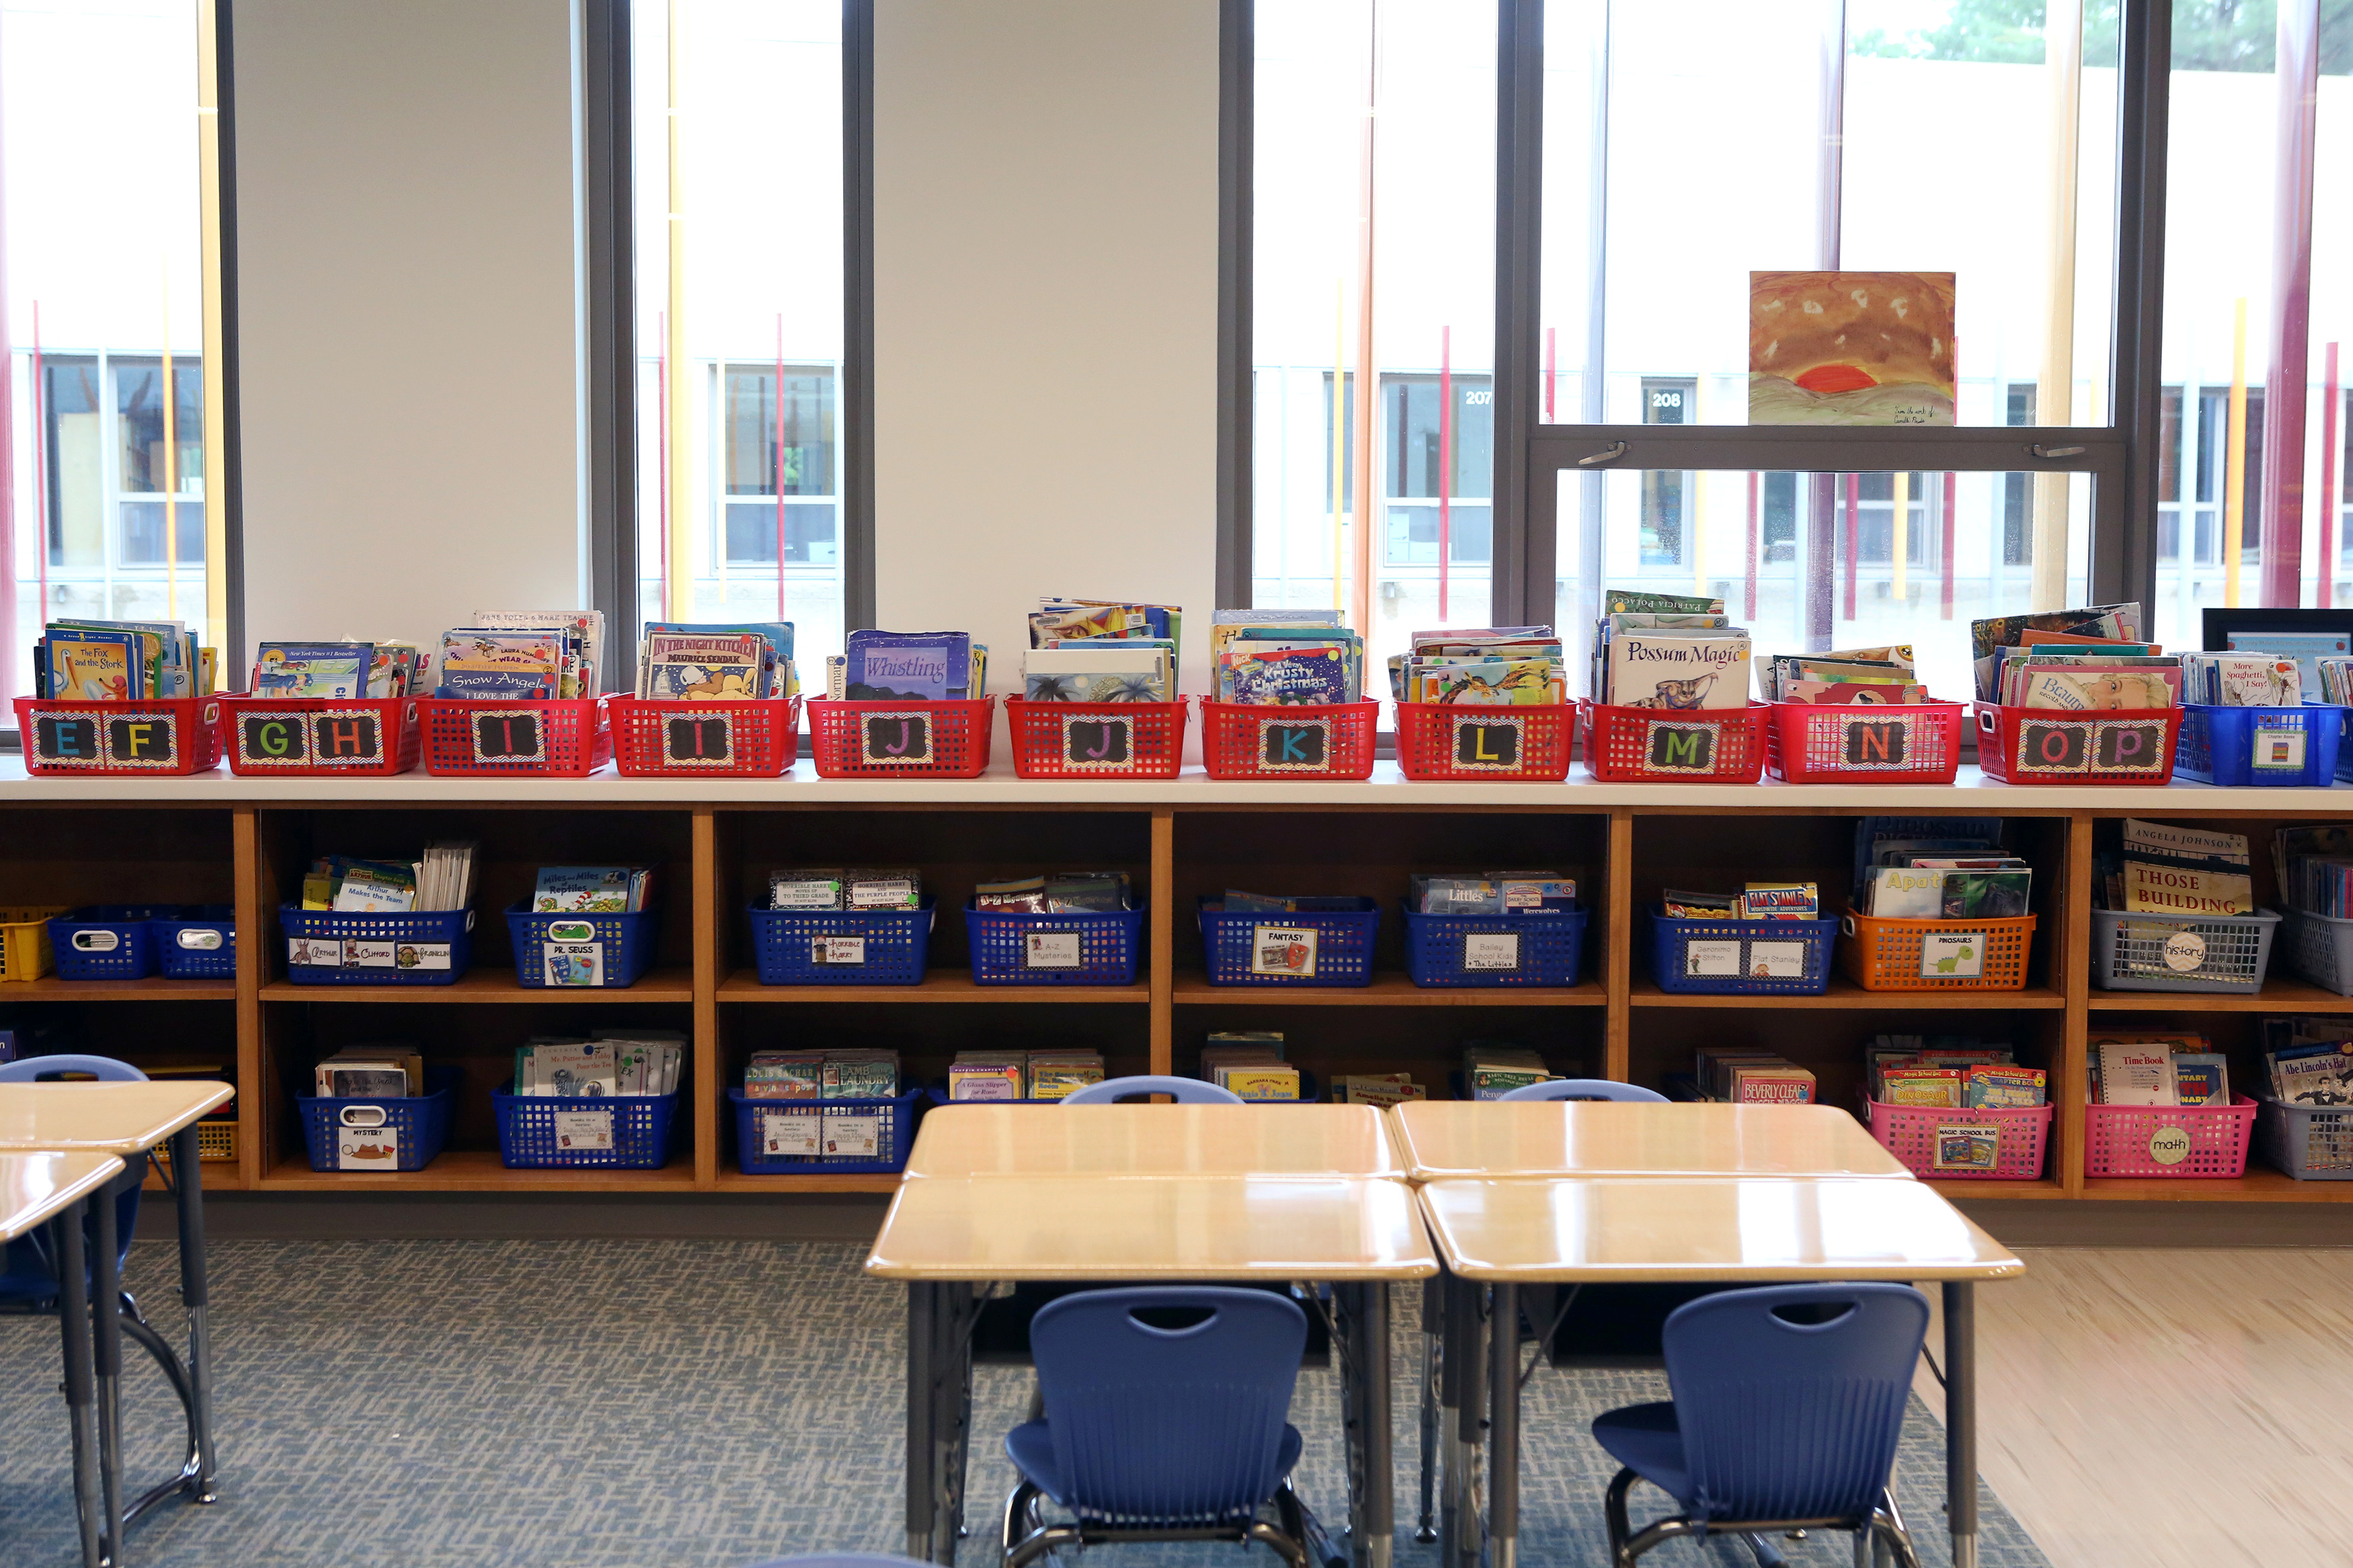 The Challenges Of Curriculum Materials As A Reform Lever